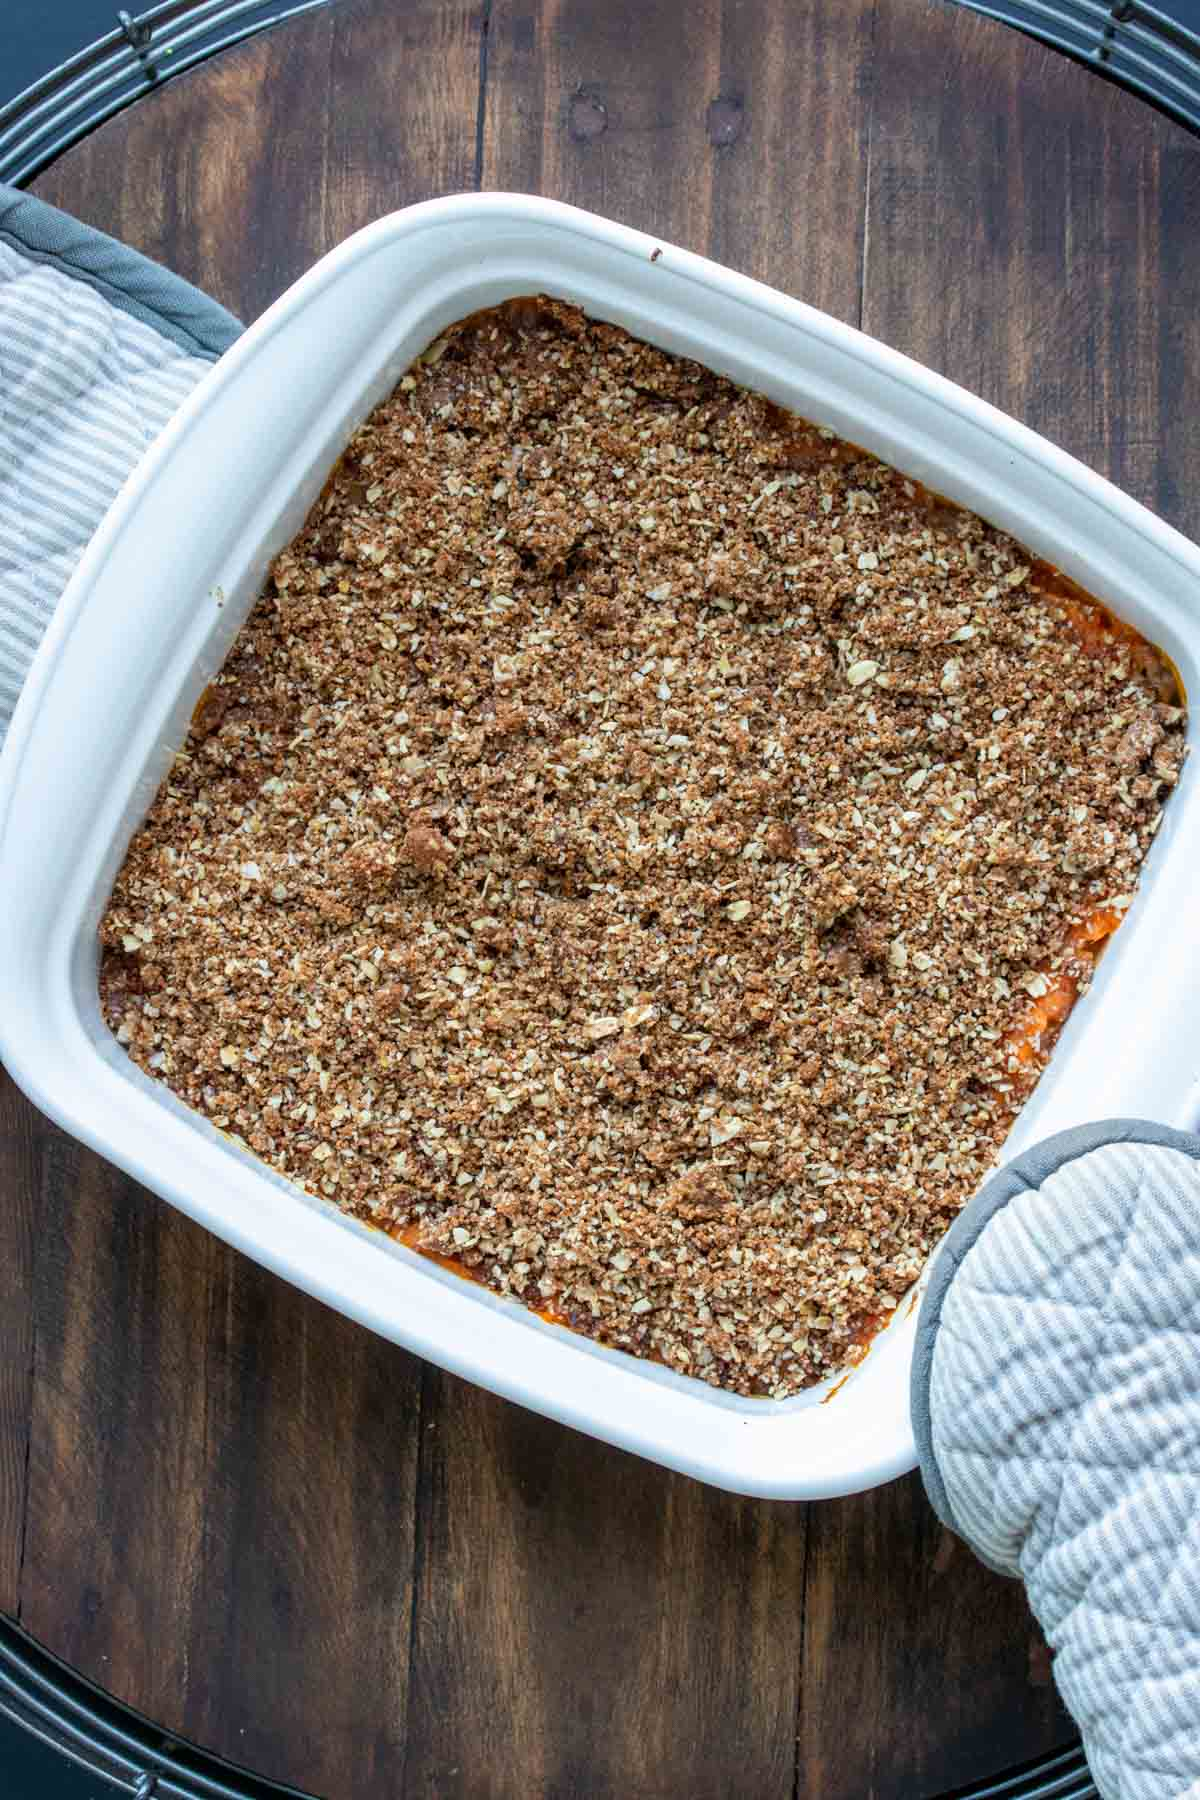 White baking dish with a baked sweet potato casserole in it